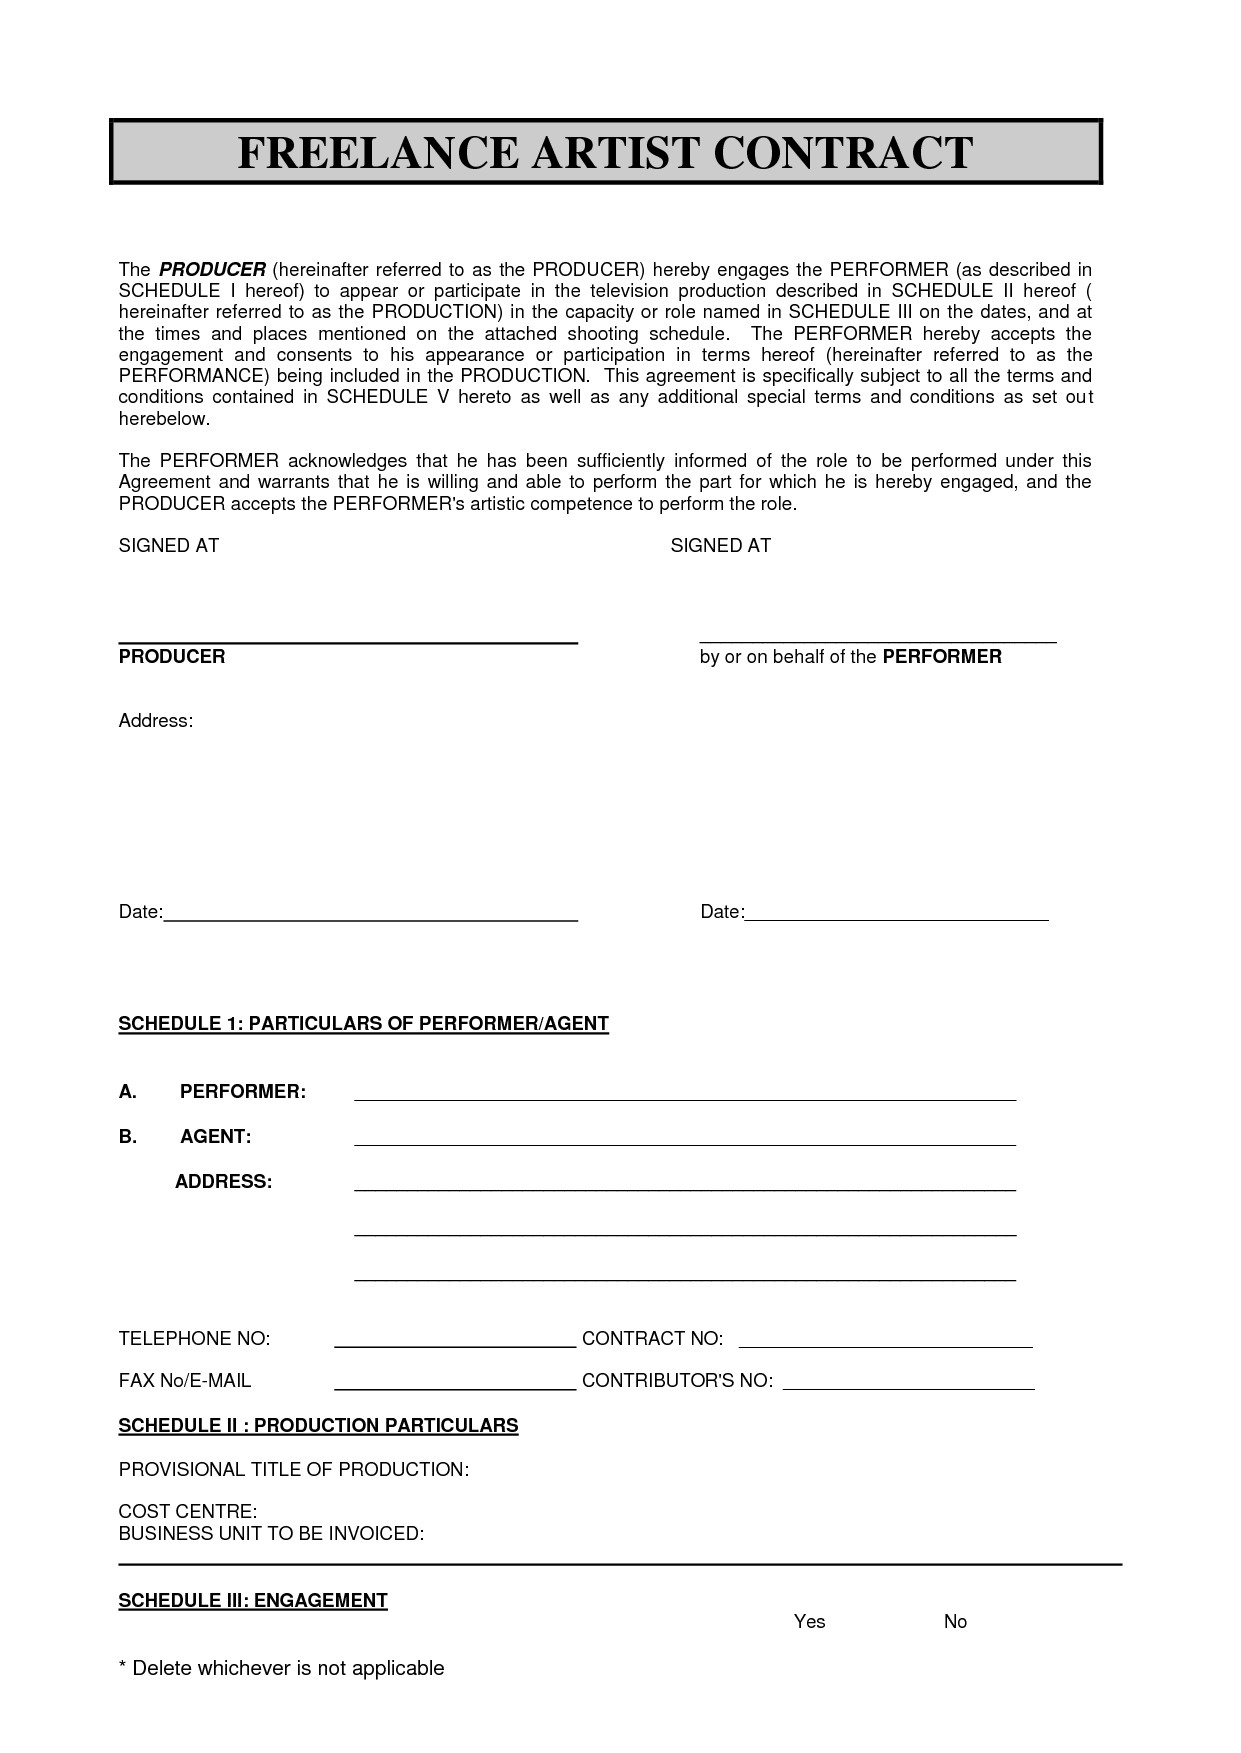 Freelance Makeup Artist Contract Template Sabc Contract 2010 Pdf Freelance Artist Contract by